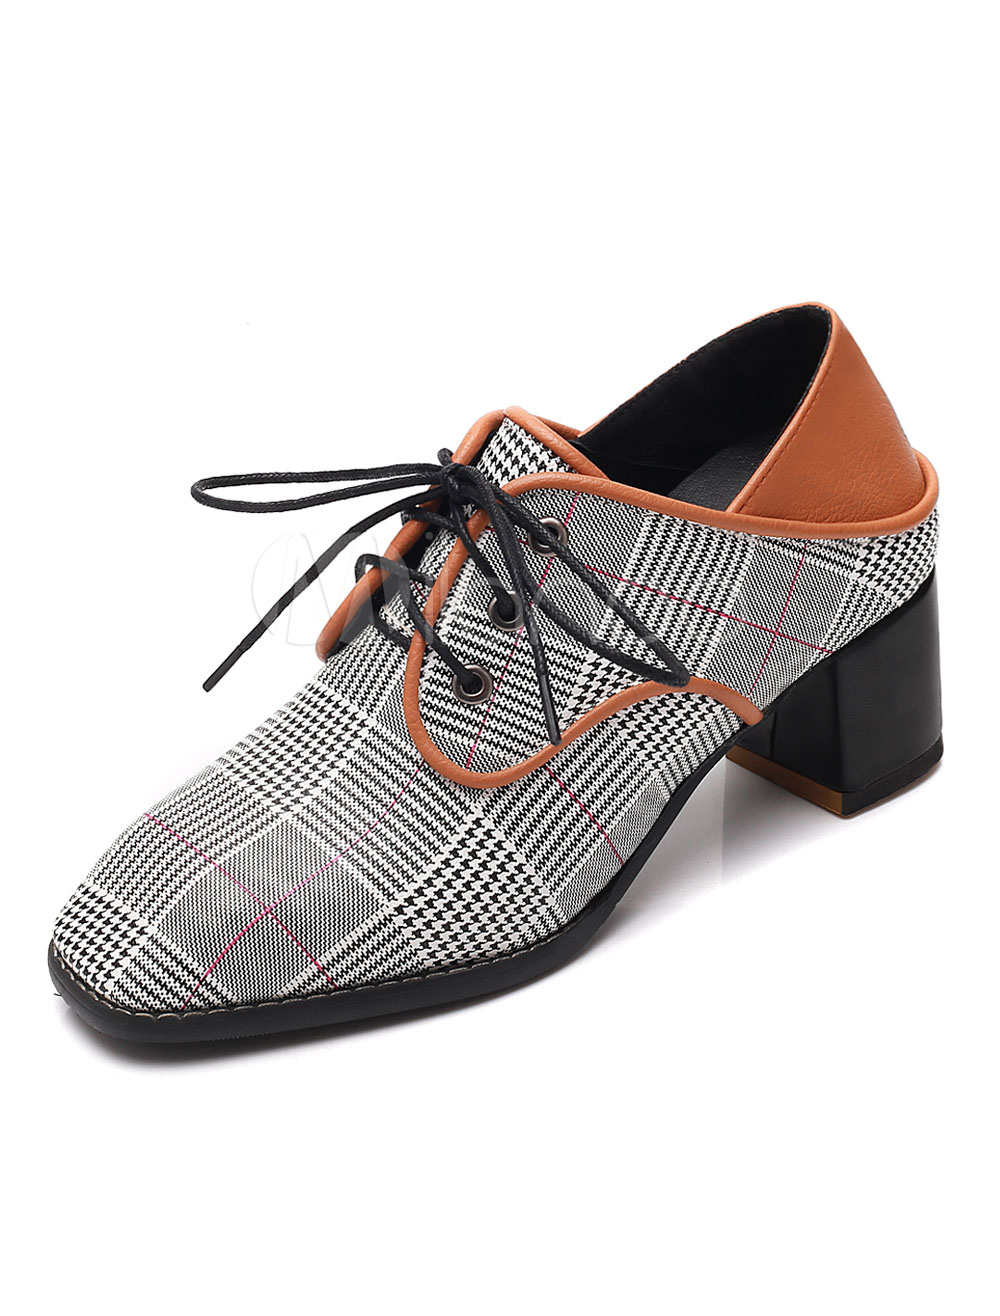 37ed1253bbafd Brown Oxford Shoes Women Square Toe Plaid Lace Up Shoes Casual Shoes